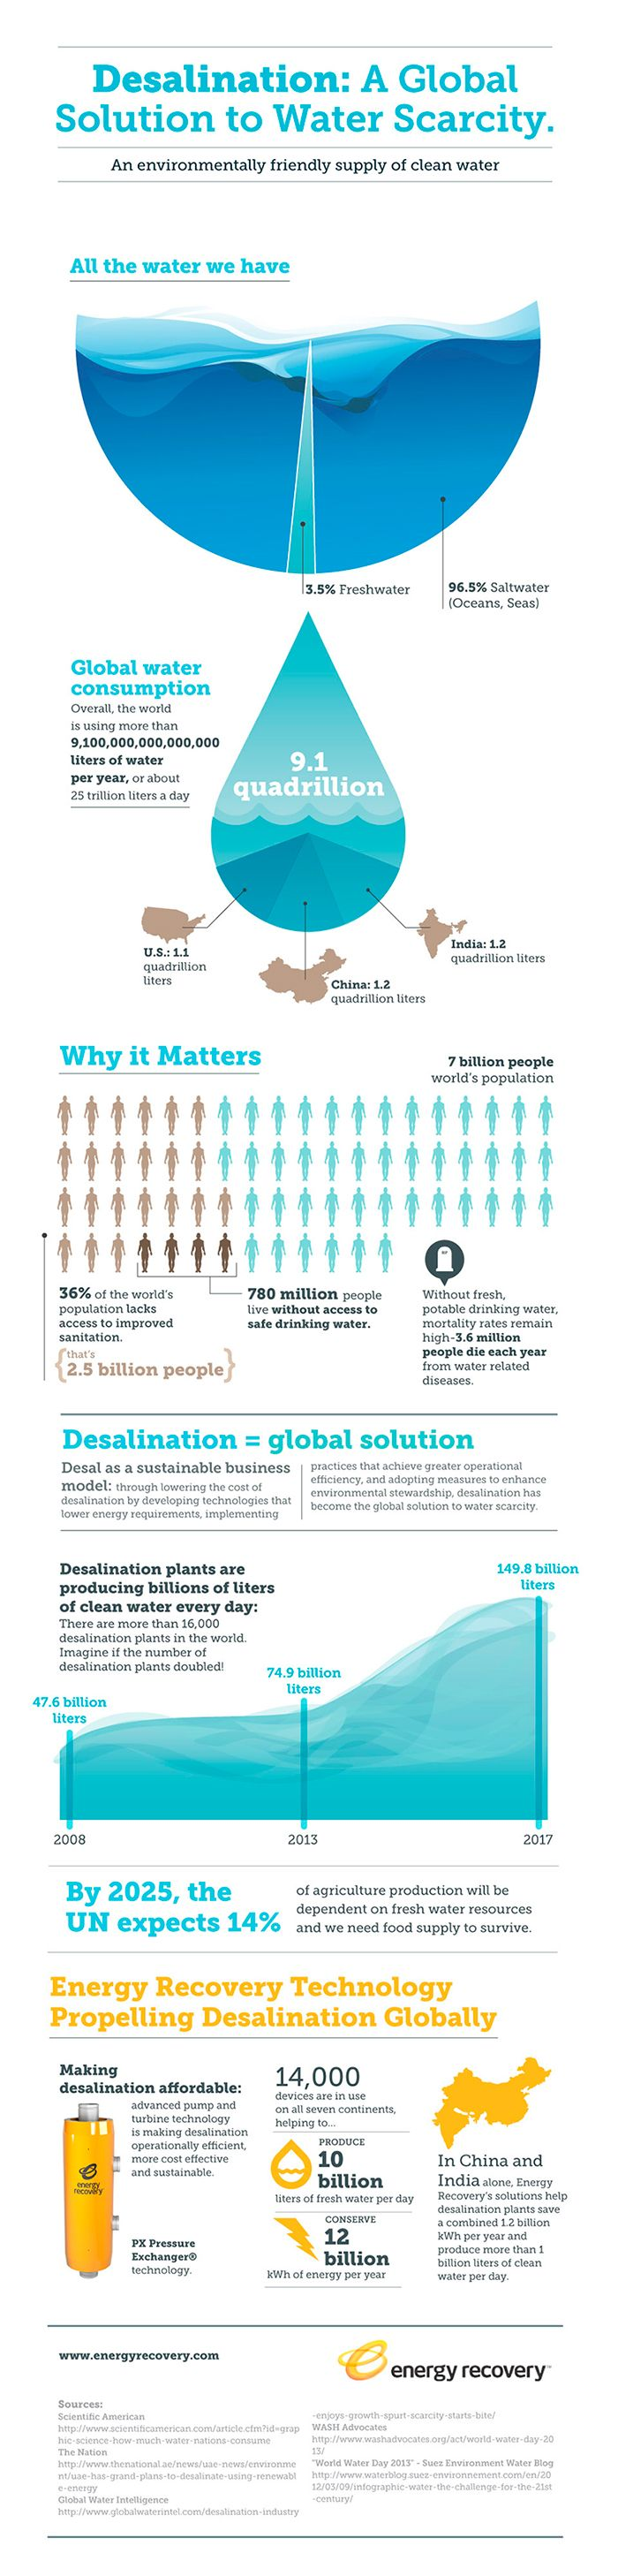 Desalination: A Global Solution to Water Scarcity